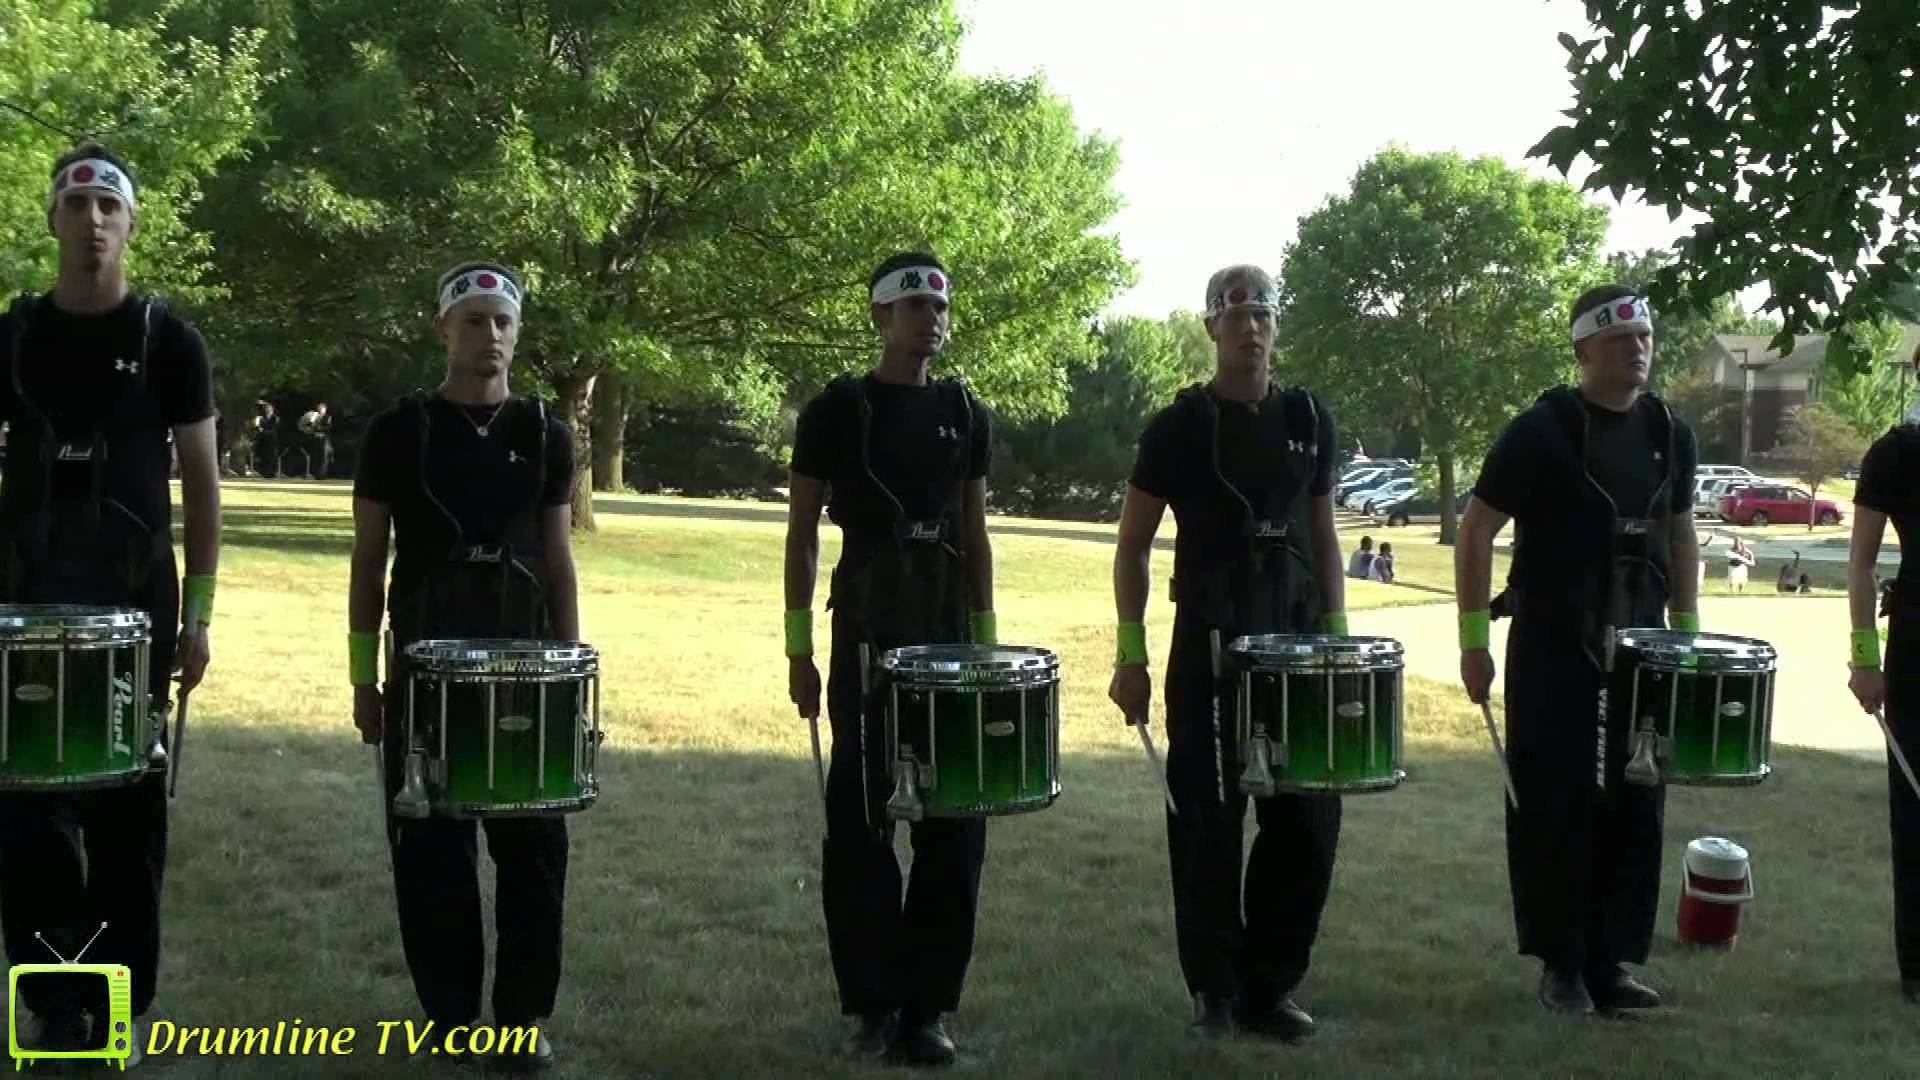 Cascades 2012 Drumline – Celebration in Brass Show – Waukee, Iowa 7-10-12